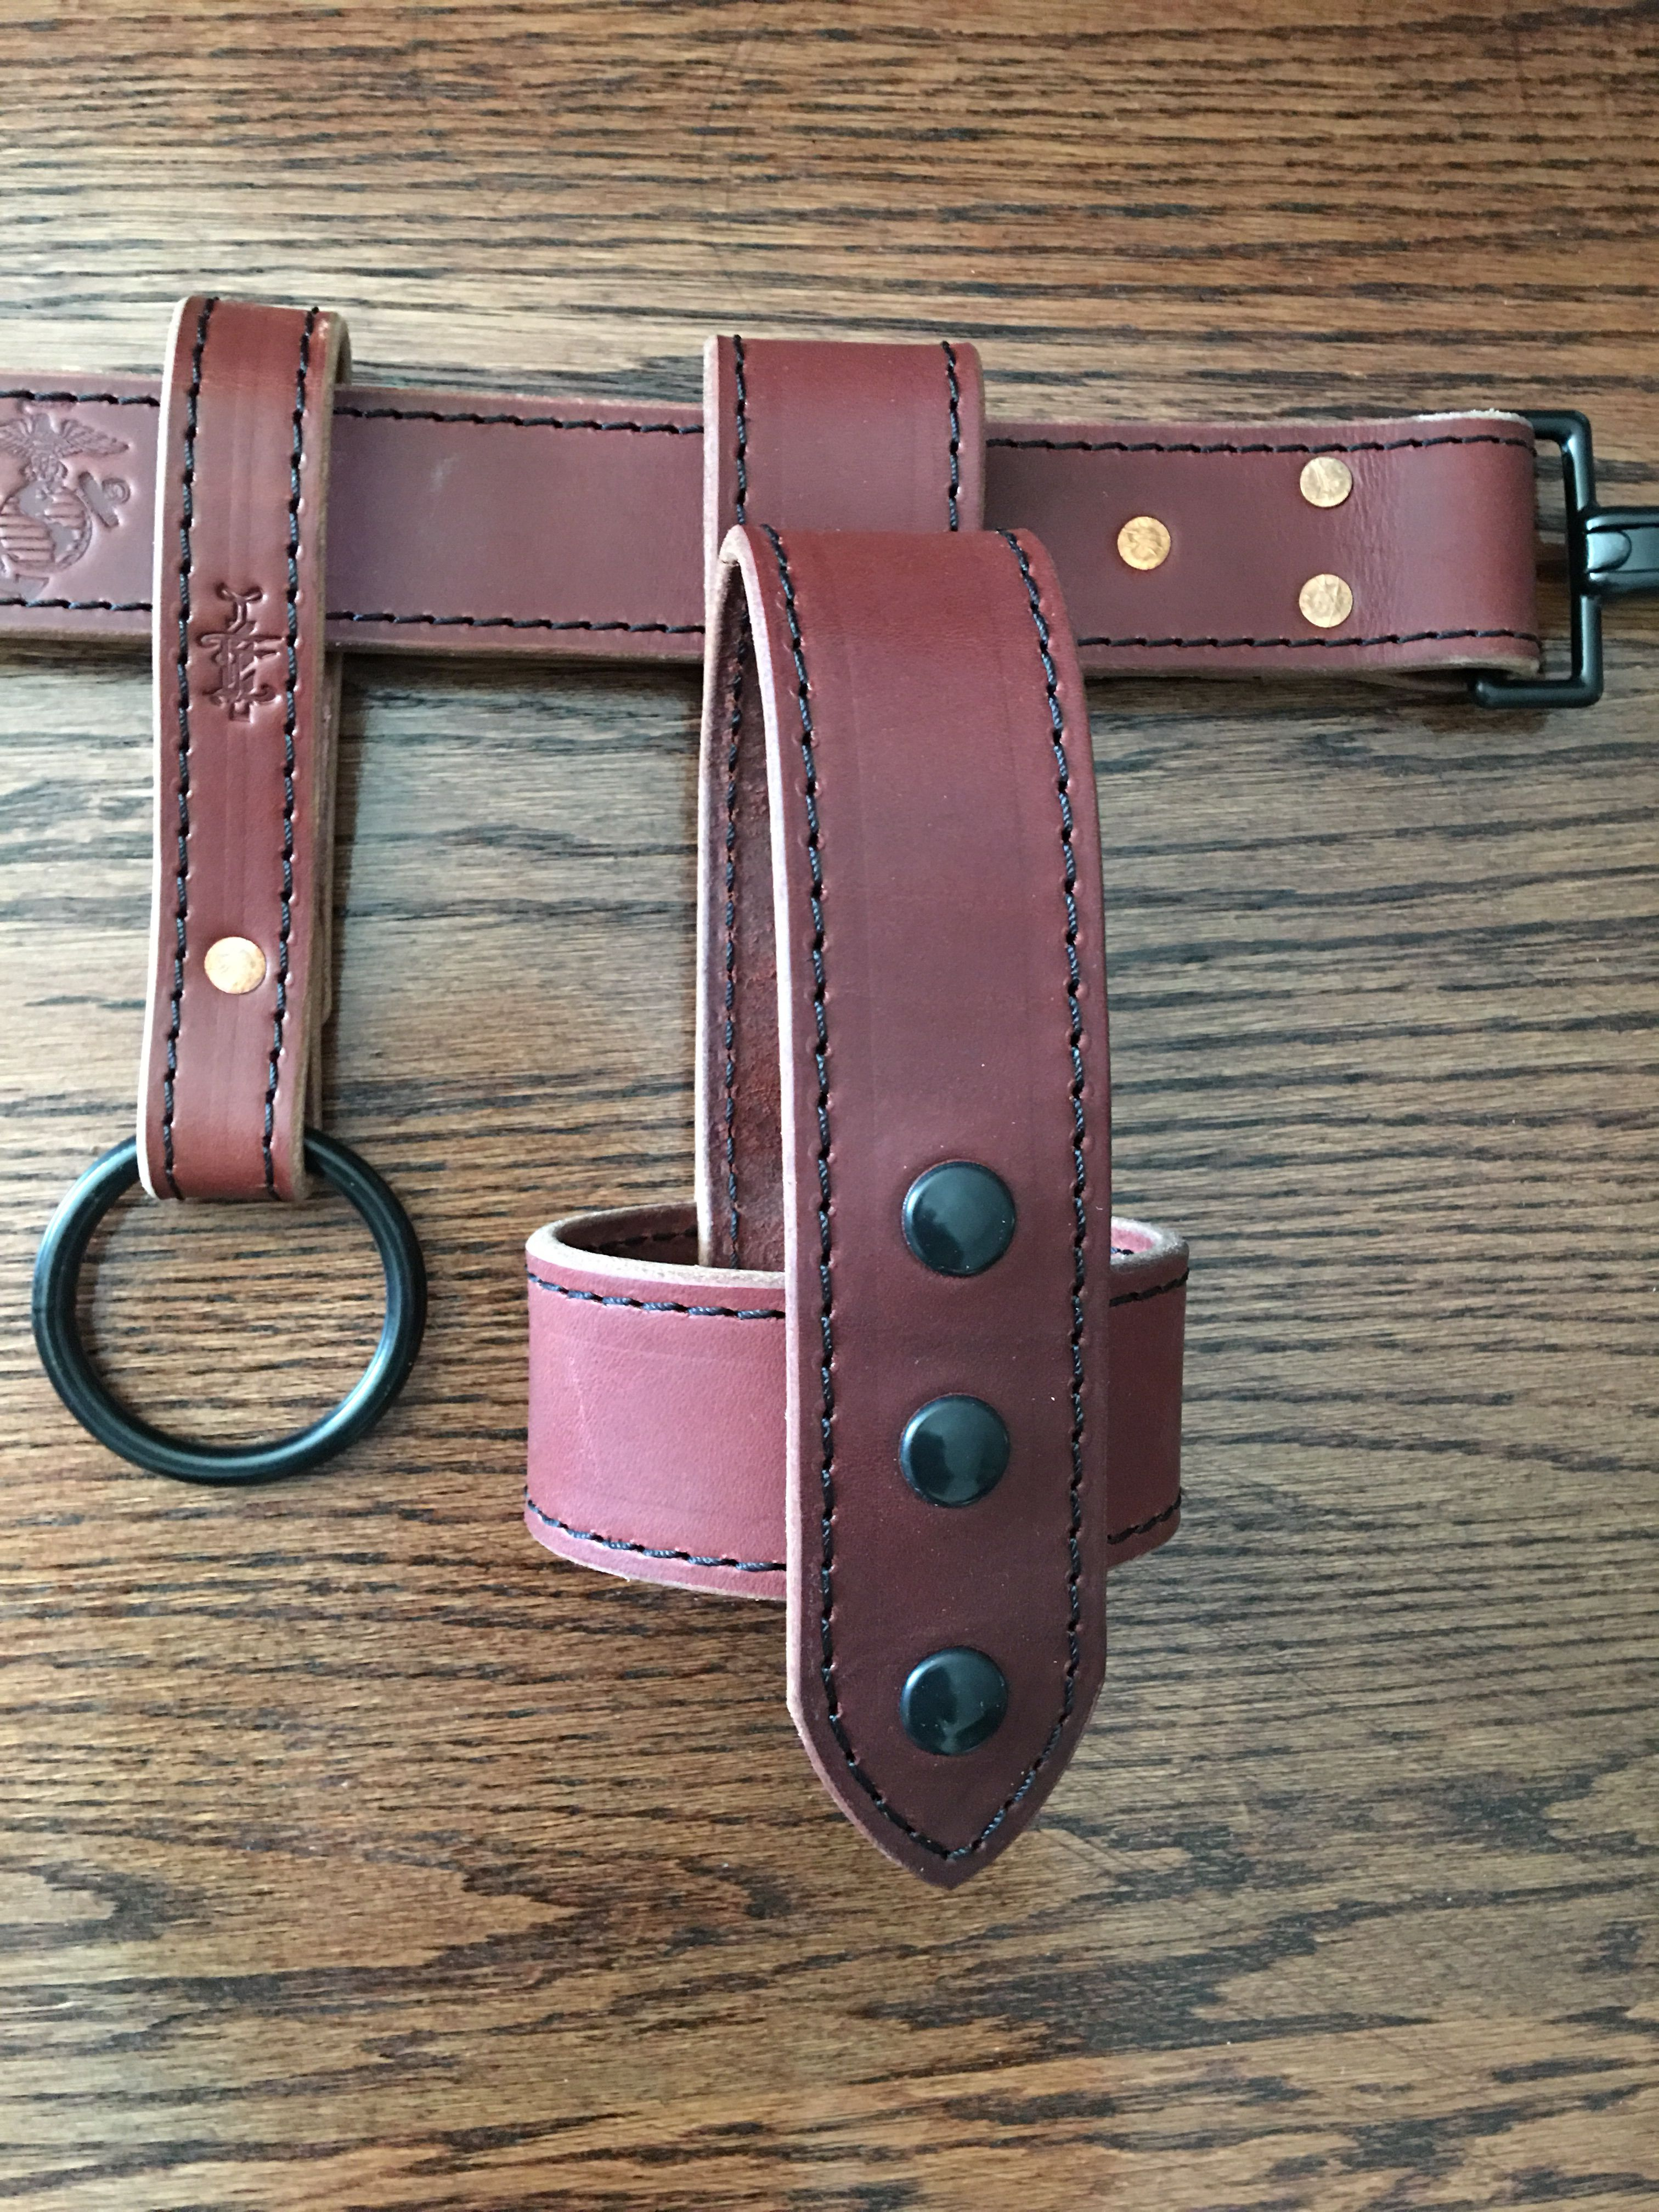 Firefighter axe scabbard leather leather working